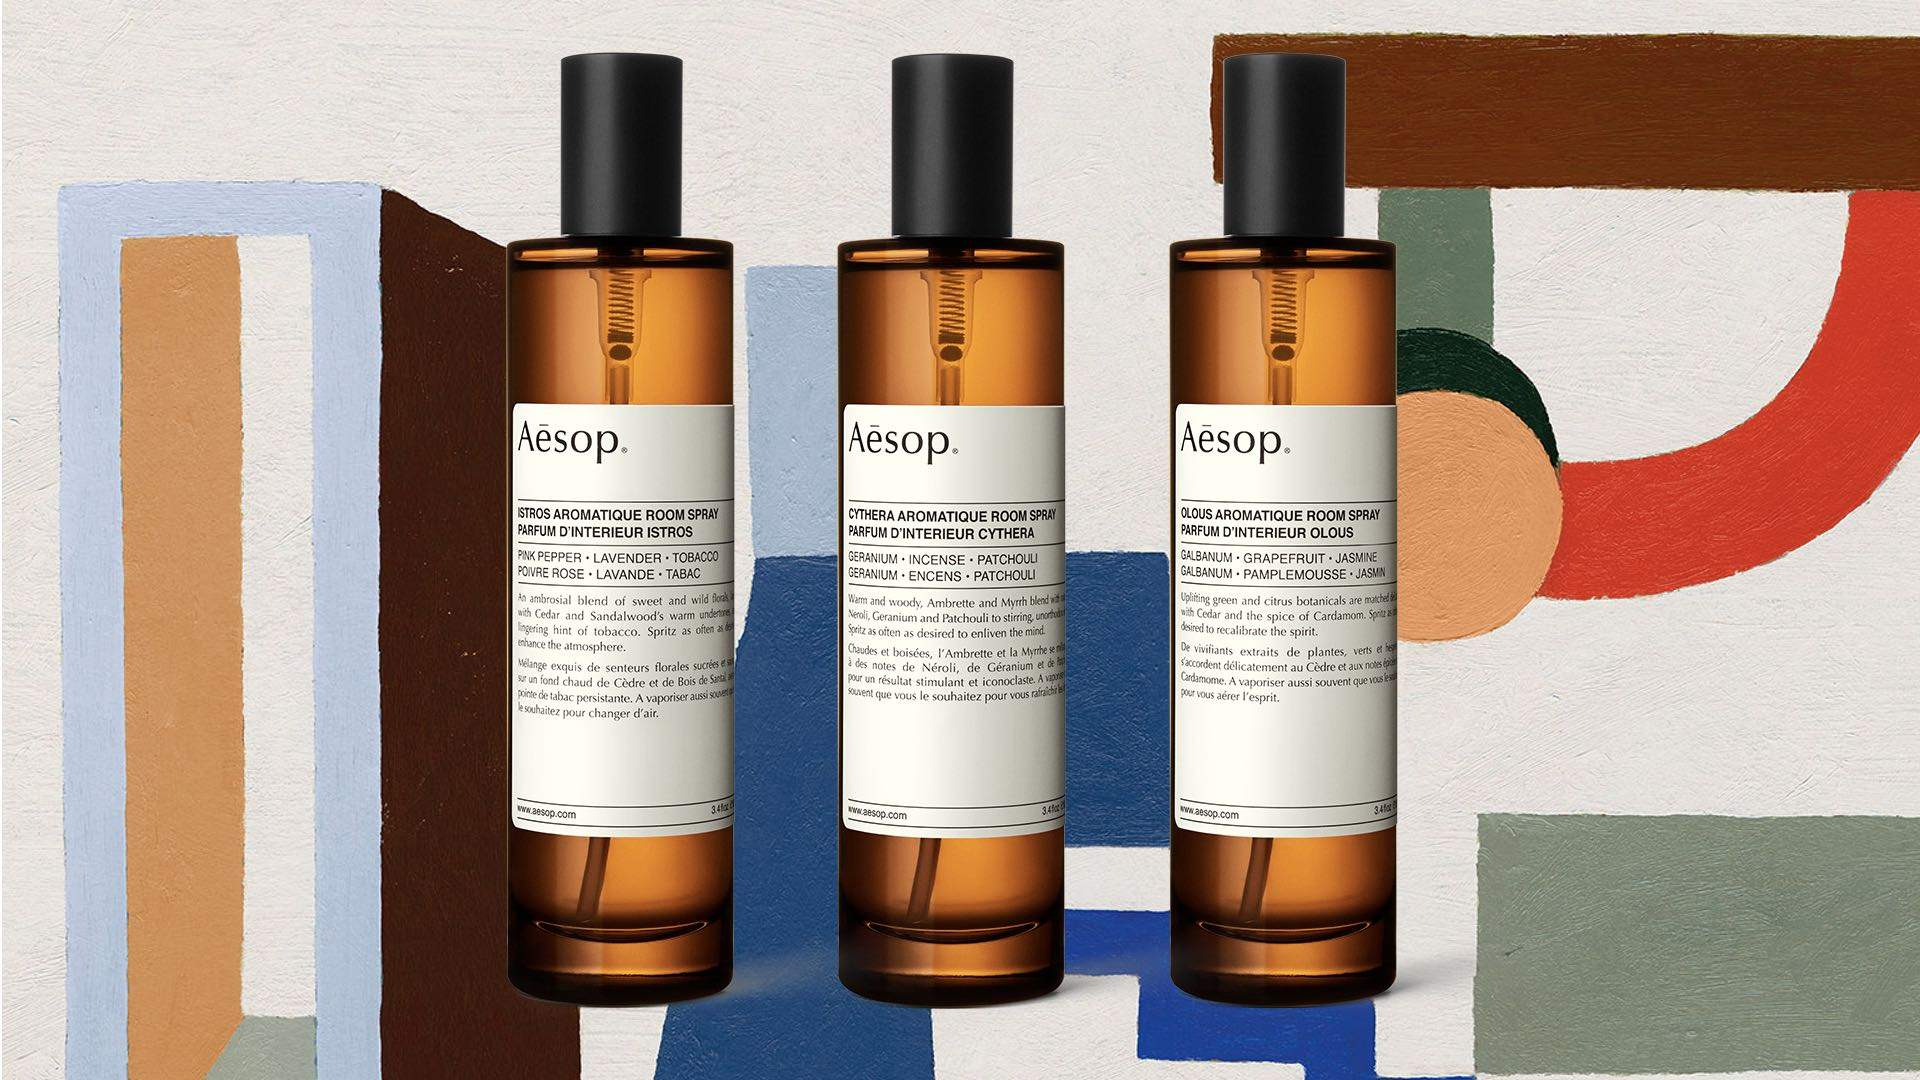 Aesop Teams Up with Composer Jesse Paris Smith to Launch Multi-Sensory Room Sprays